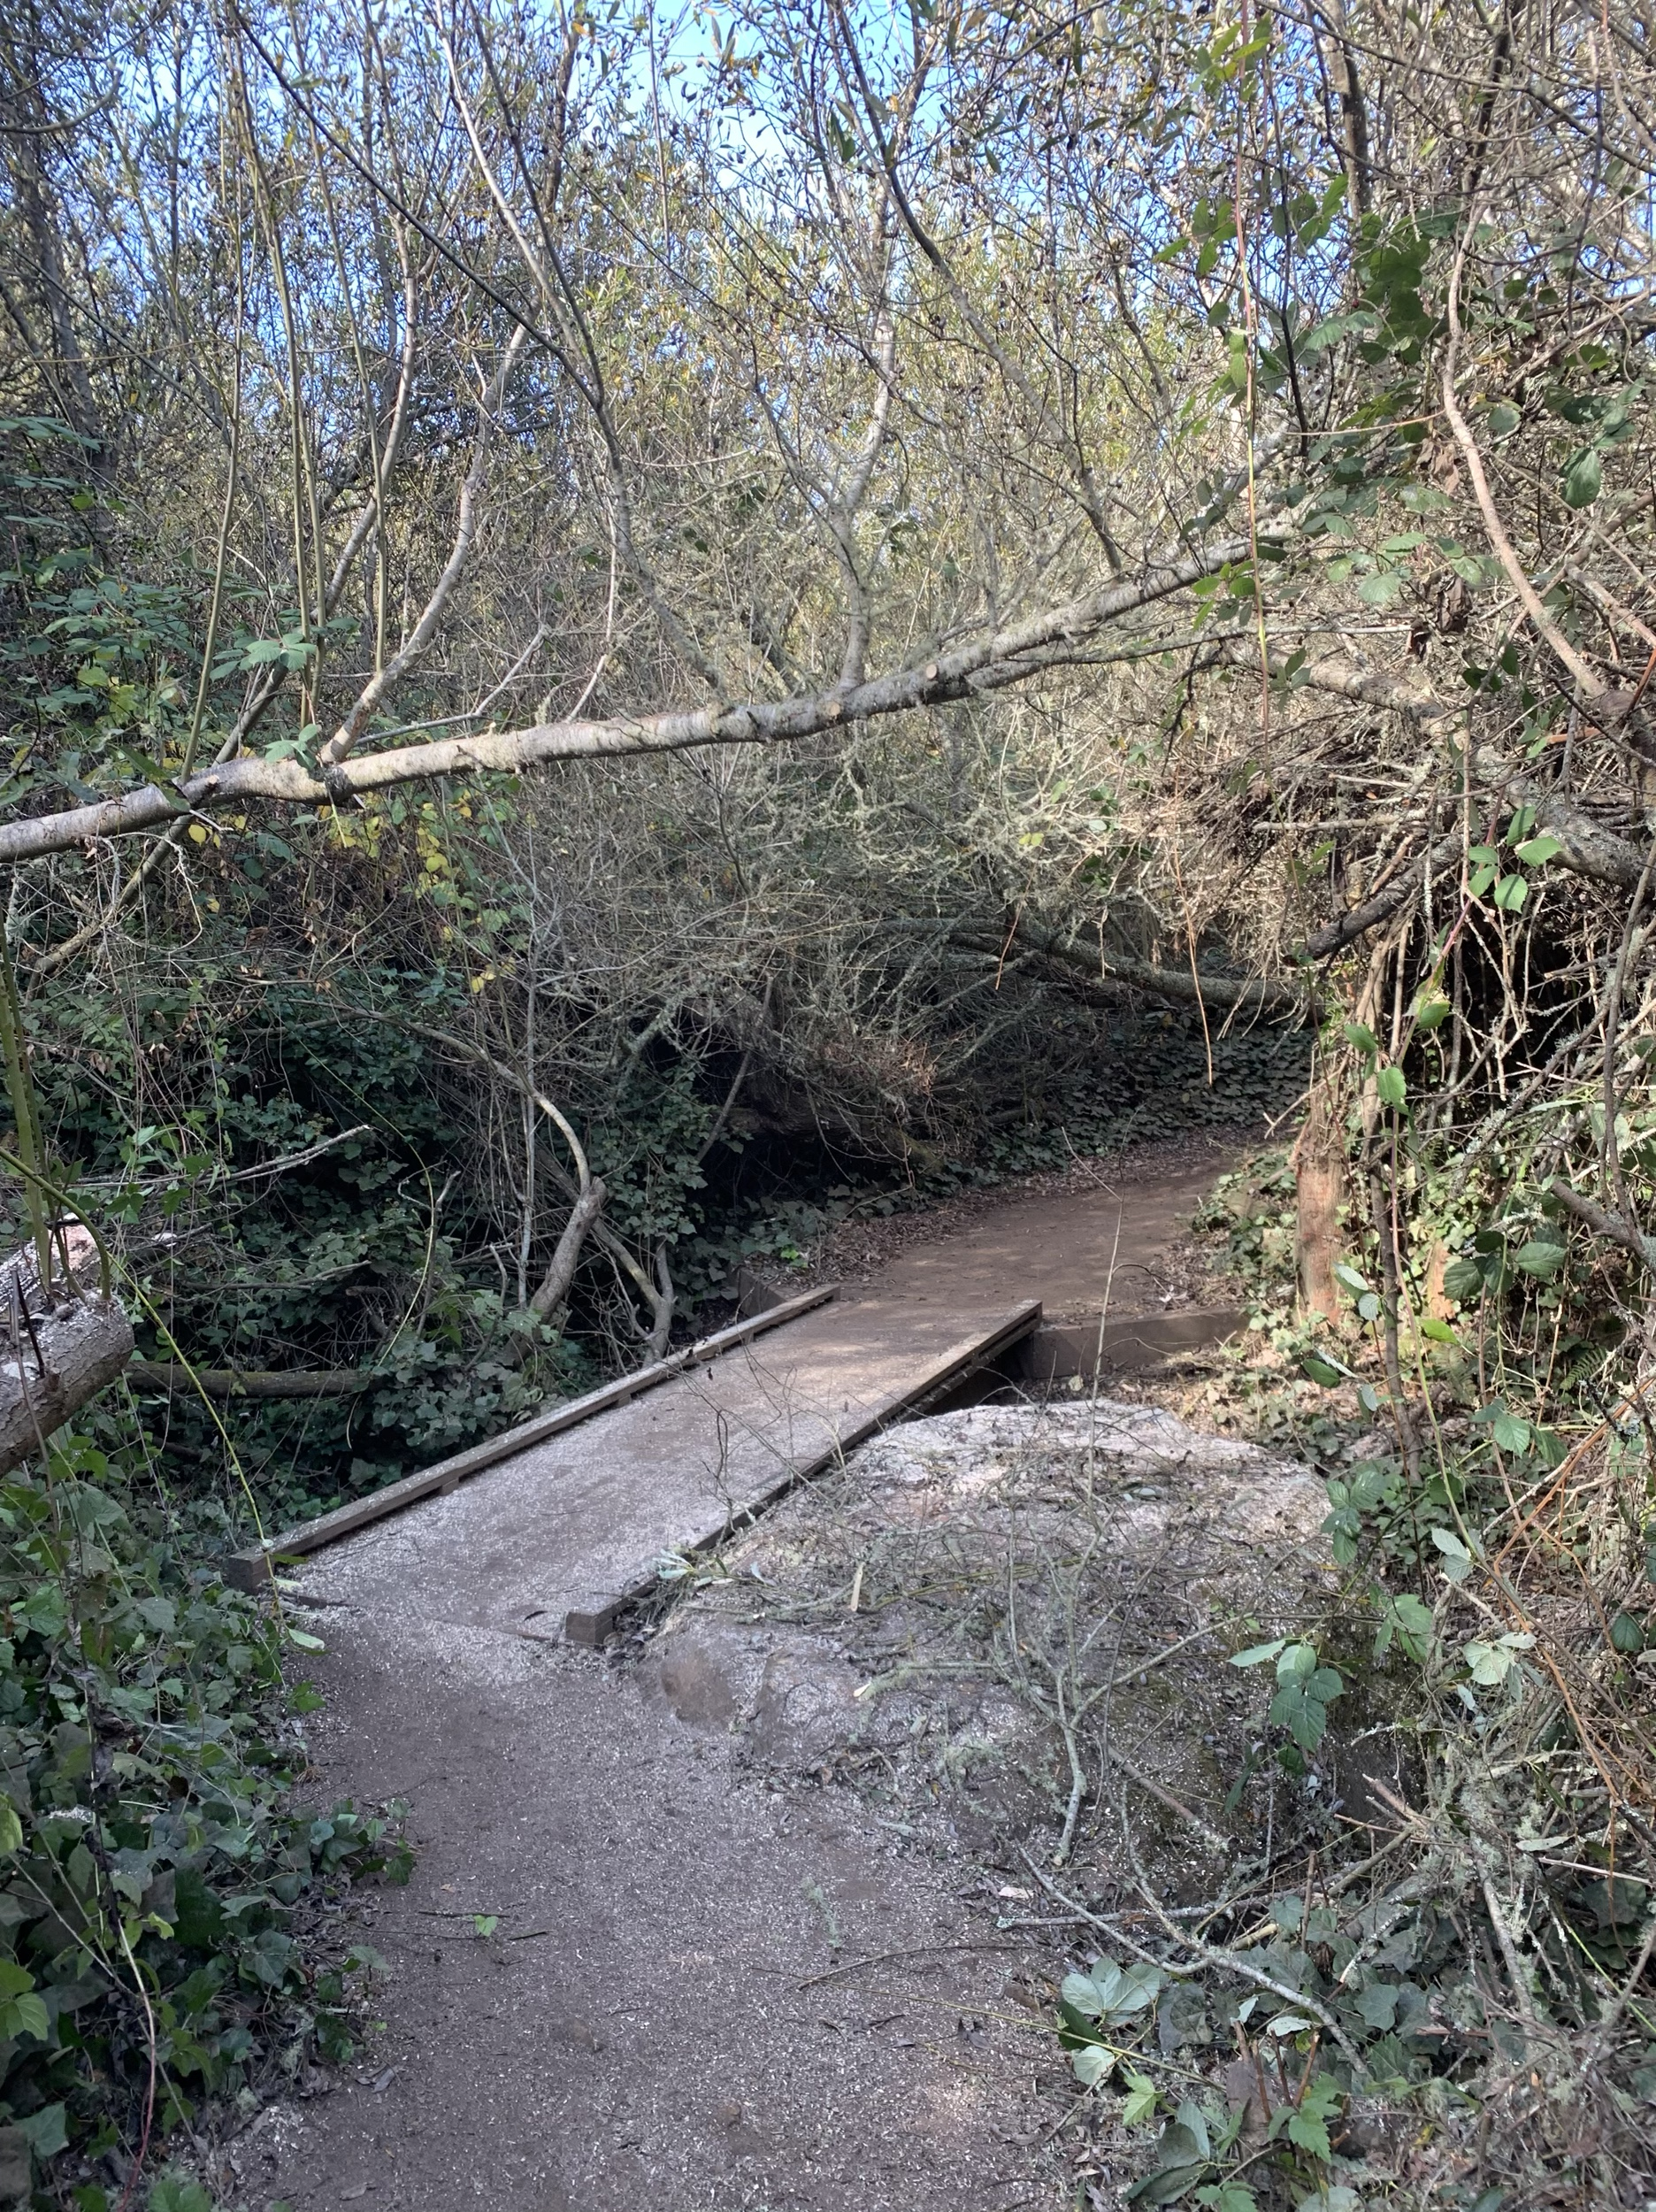 A portion of trail at Glen Canyon after brush removal